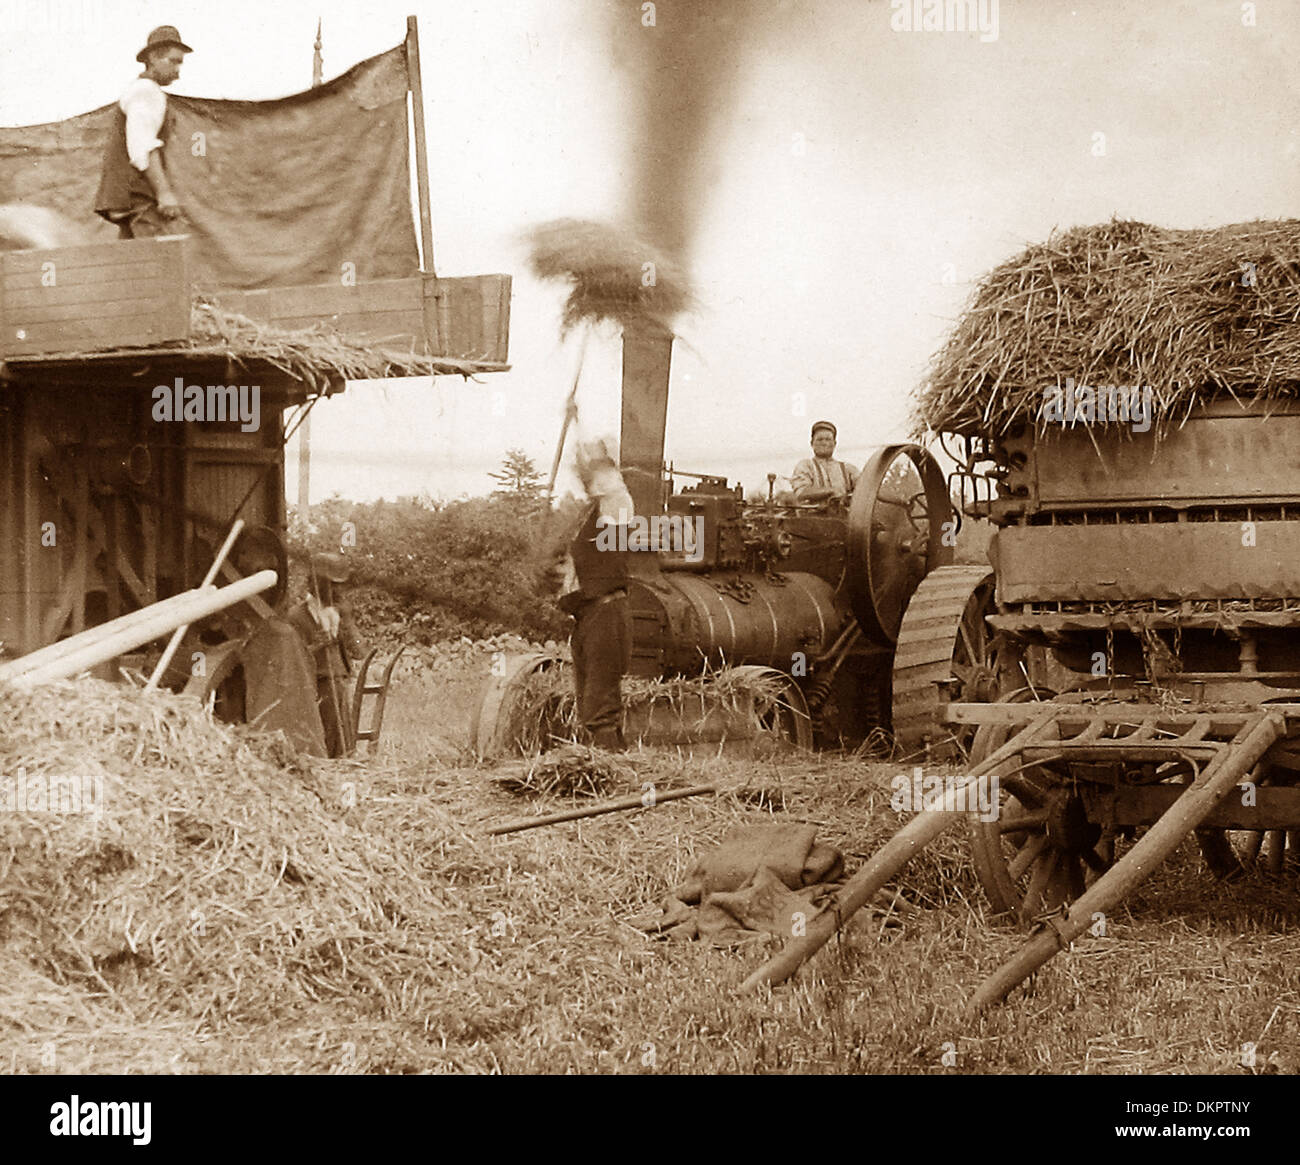 Haymaking with a traction engine early 1900s - Stock Image